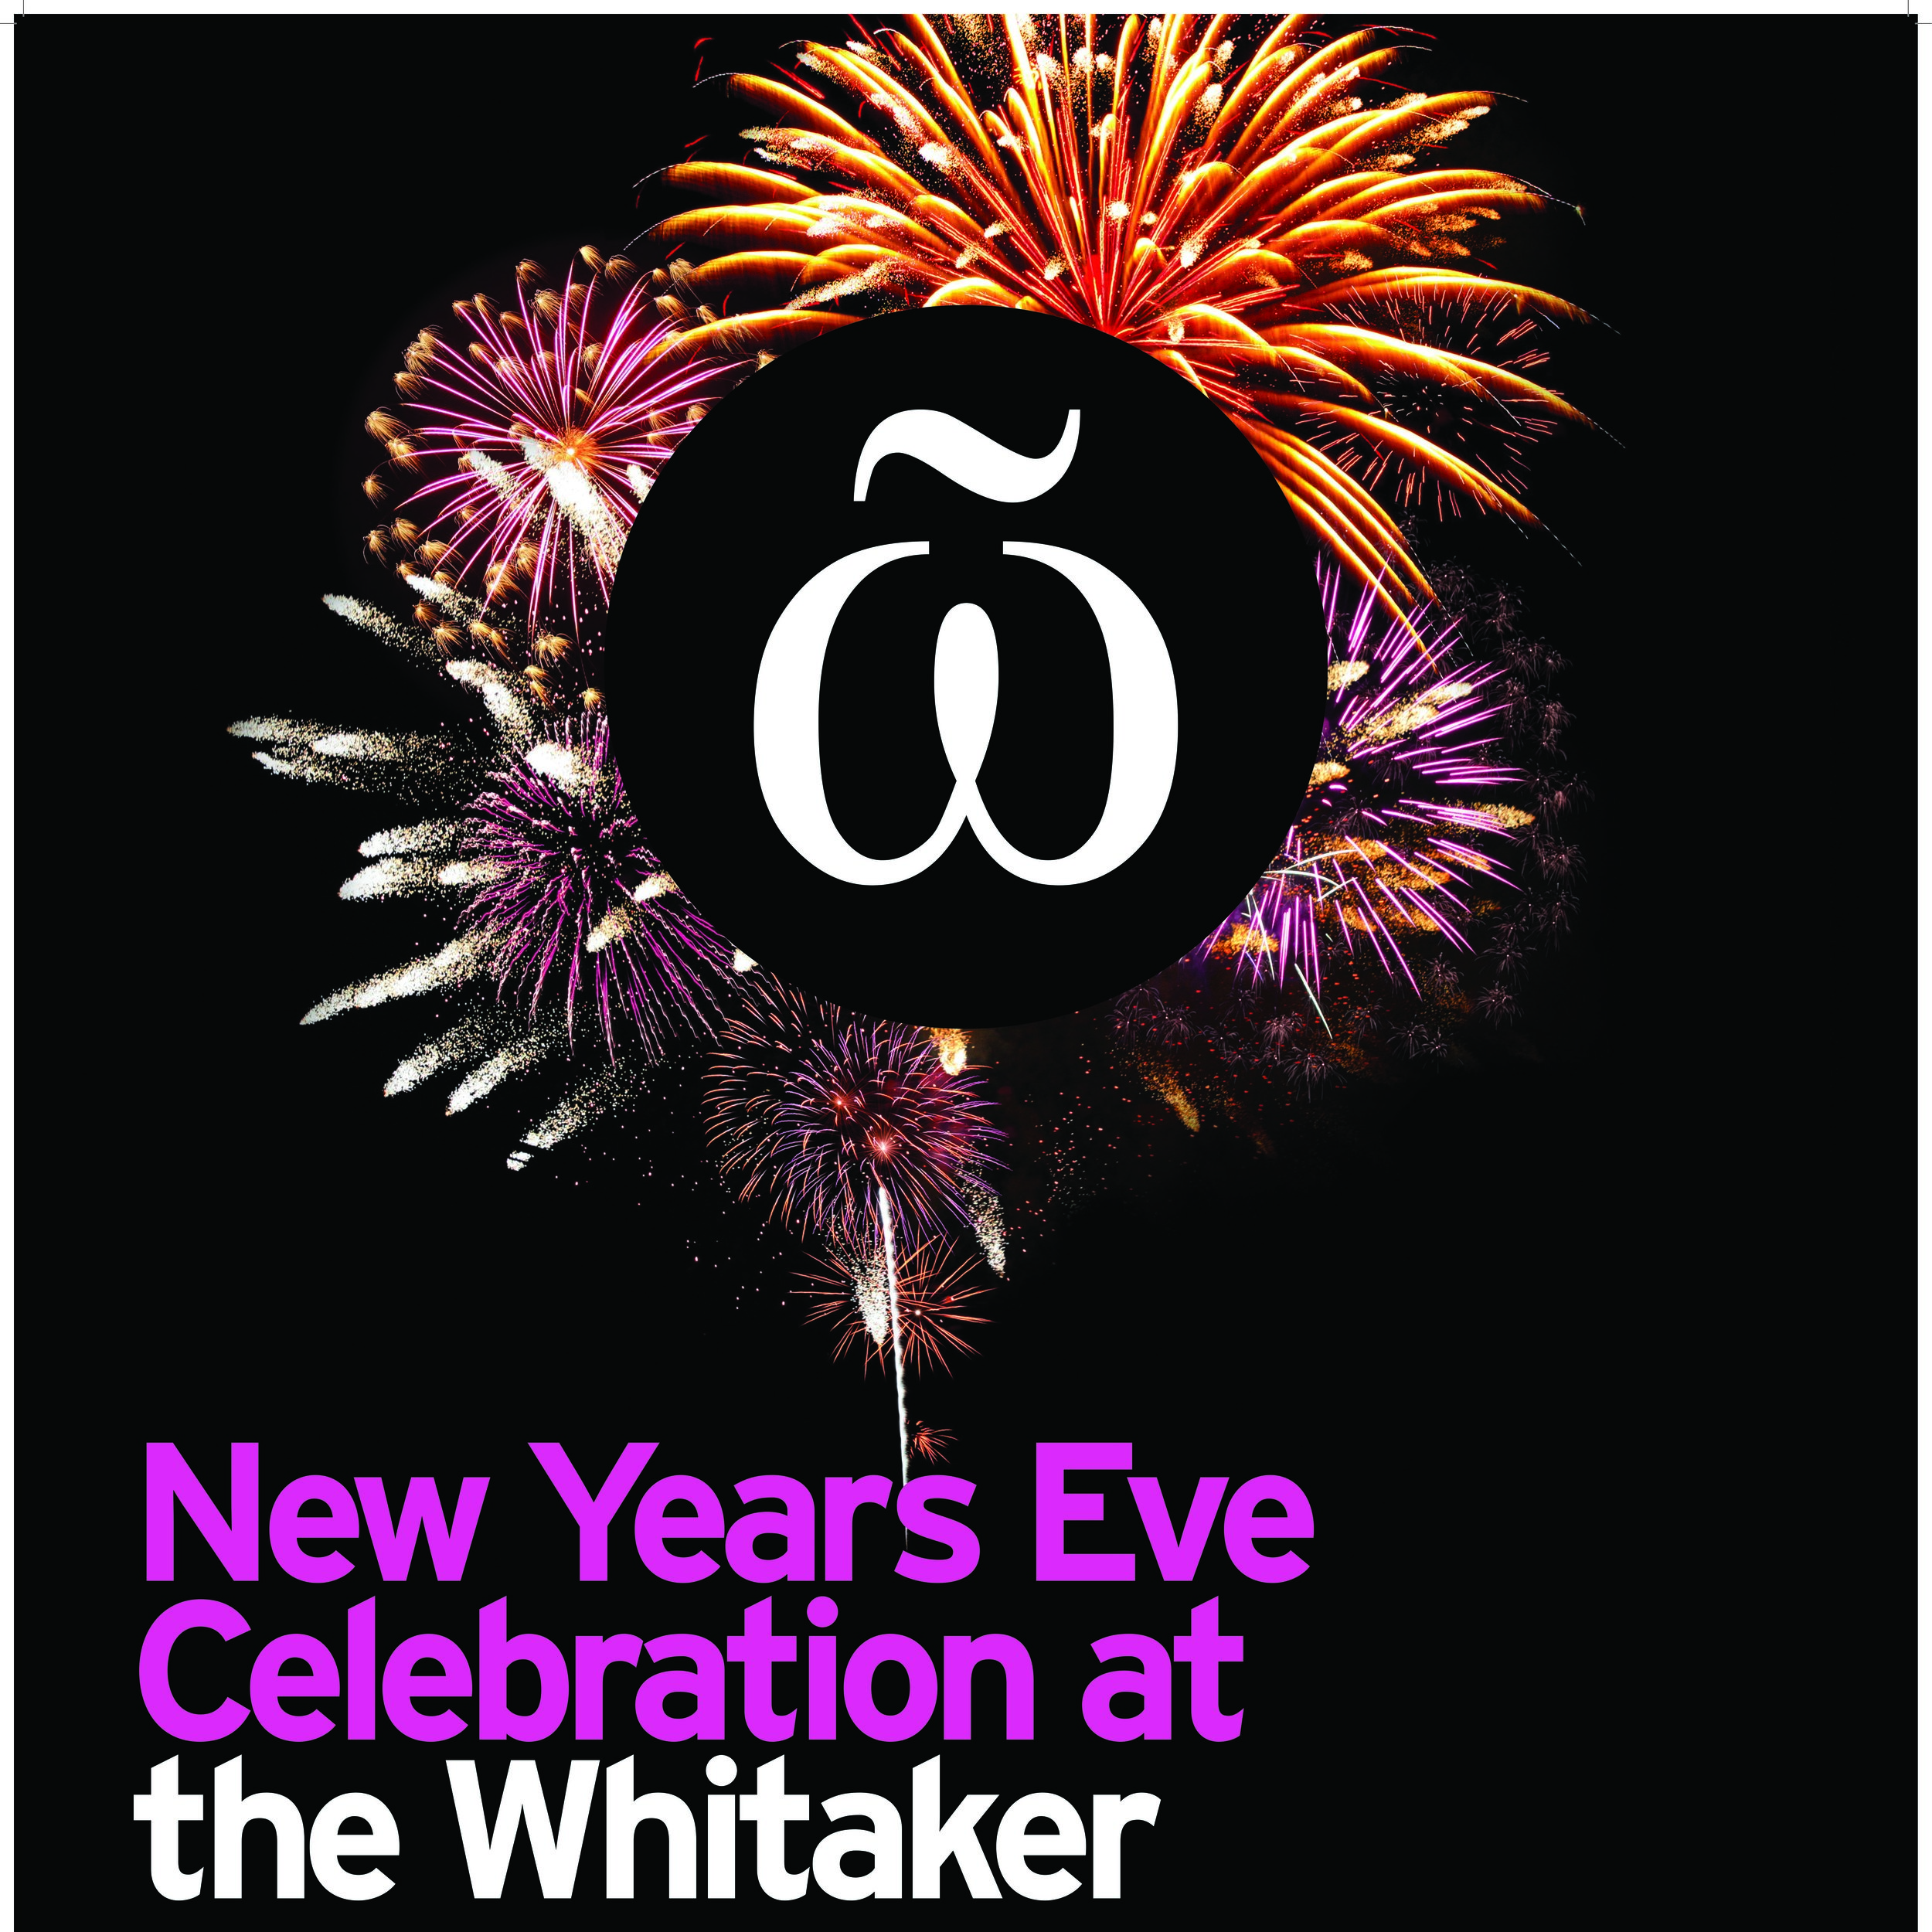 New Years Eve at The Whitaker